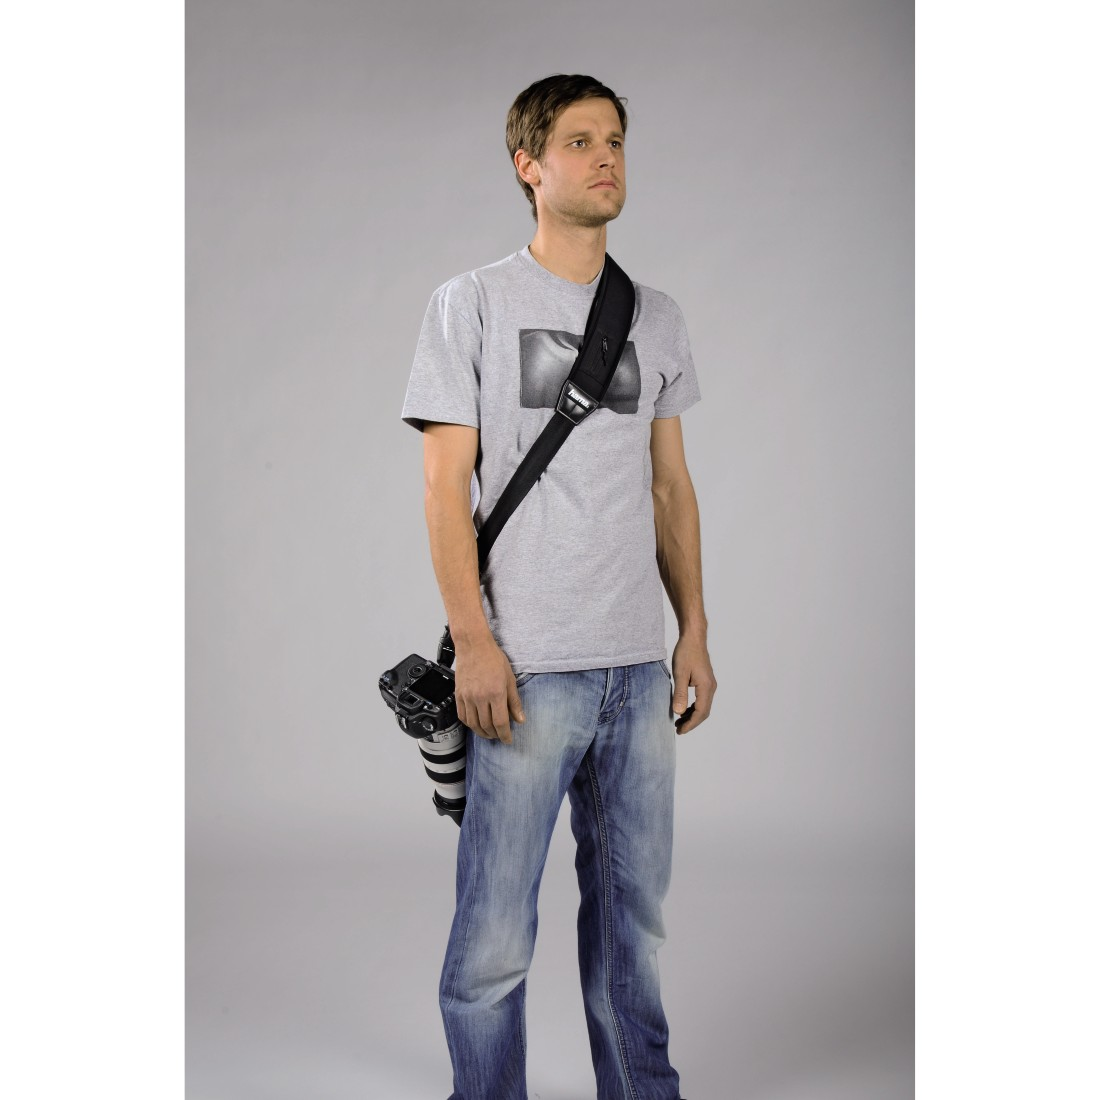 "awx4 High-Res Appliance 4 - Hama, Draagriem ""Quick Shoot Strap"" voor SLR-camera's"